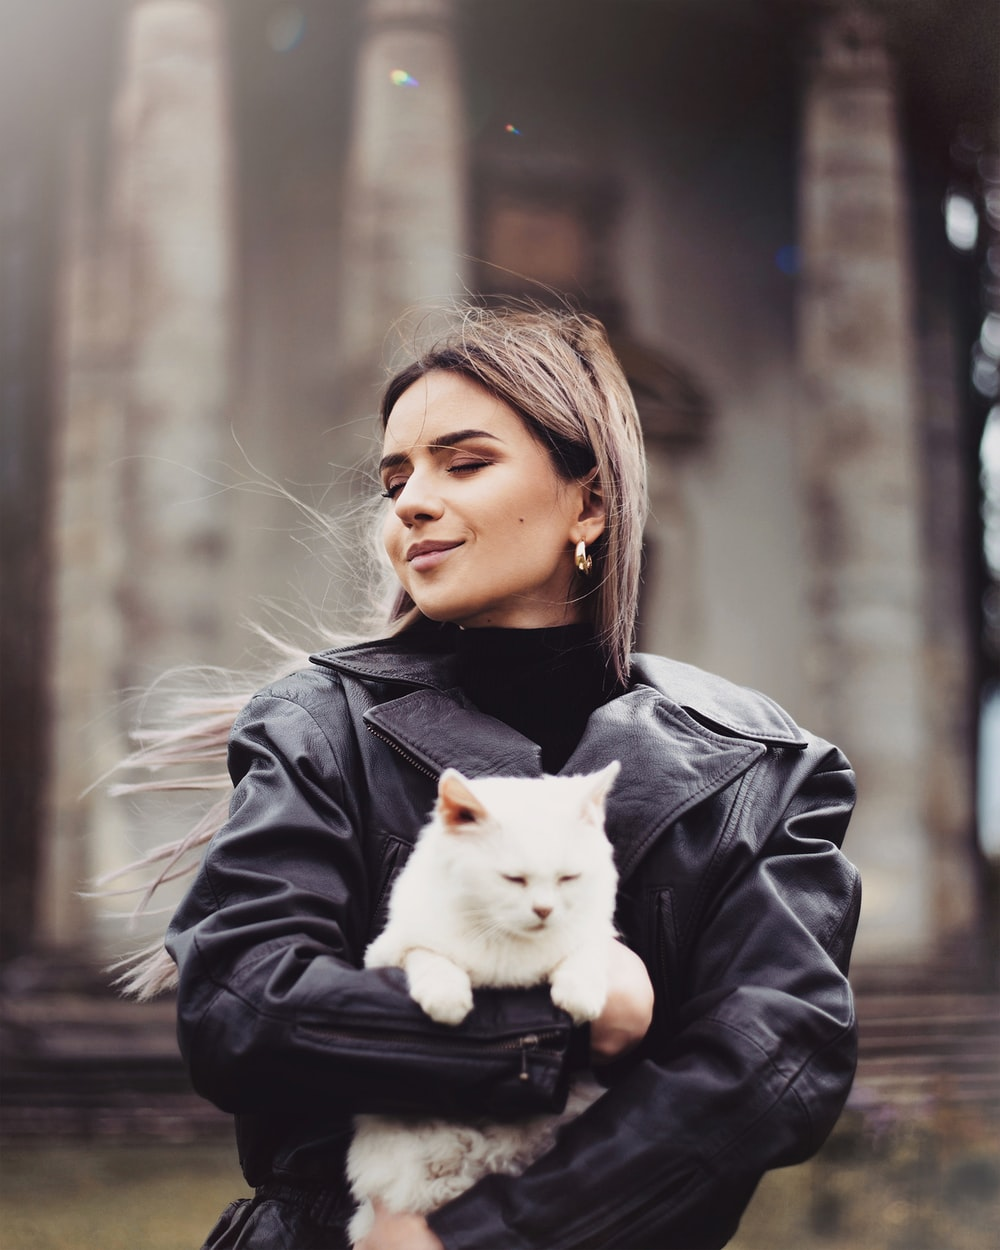 girl in black leather jacket holding white cat